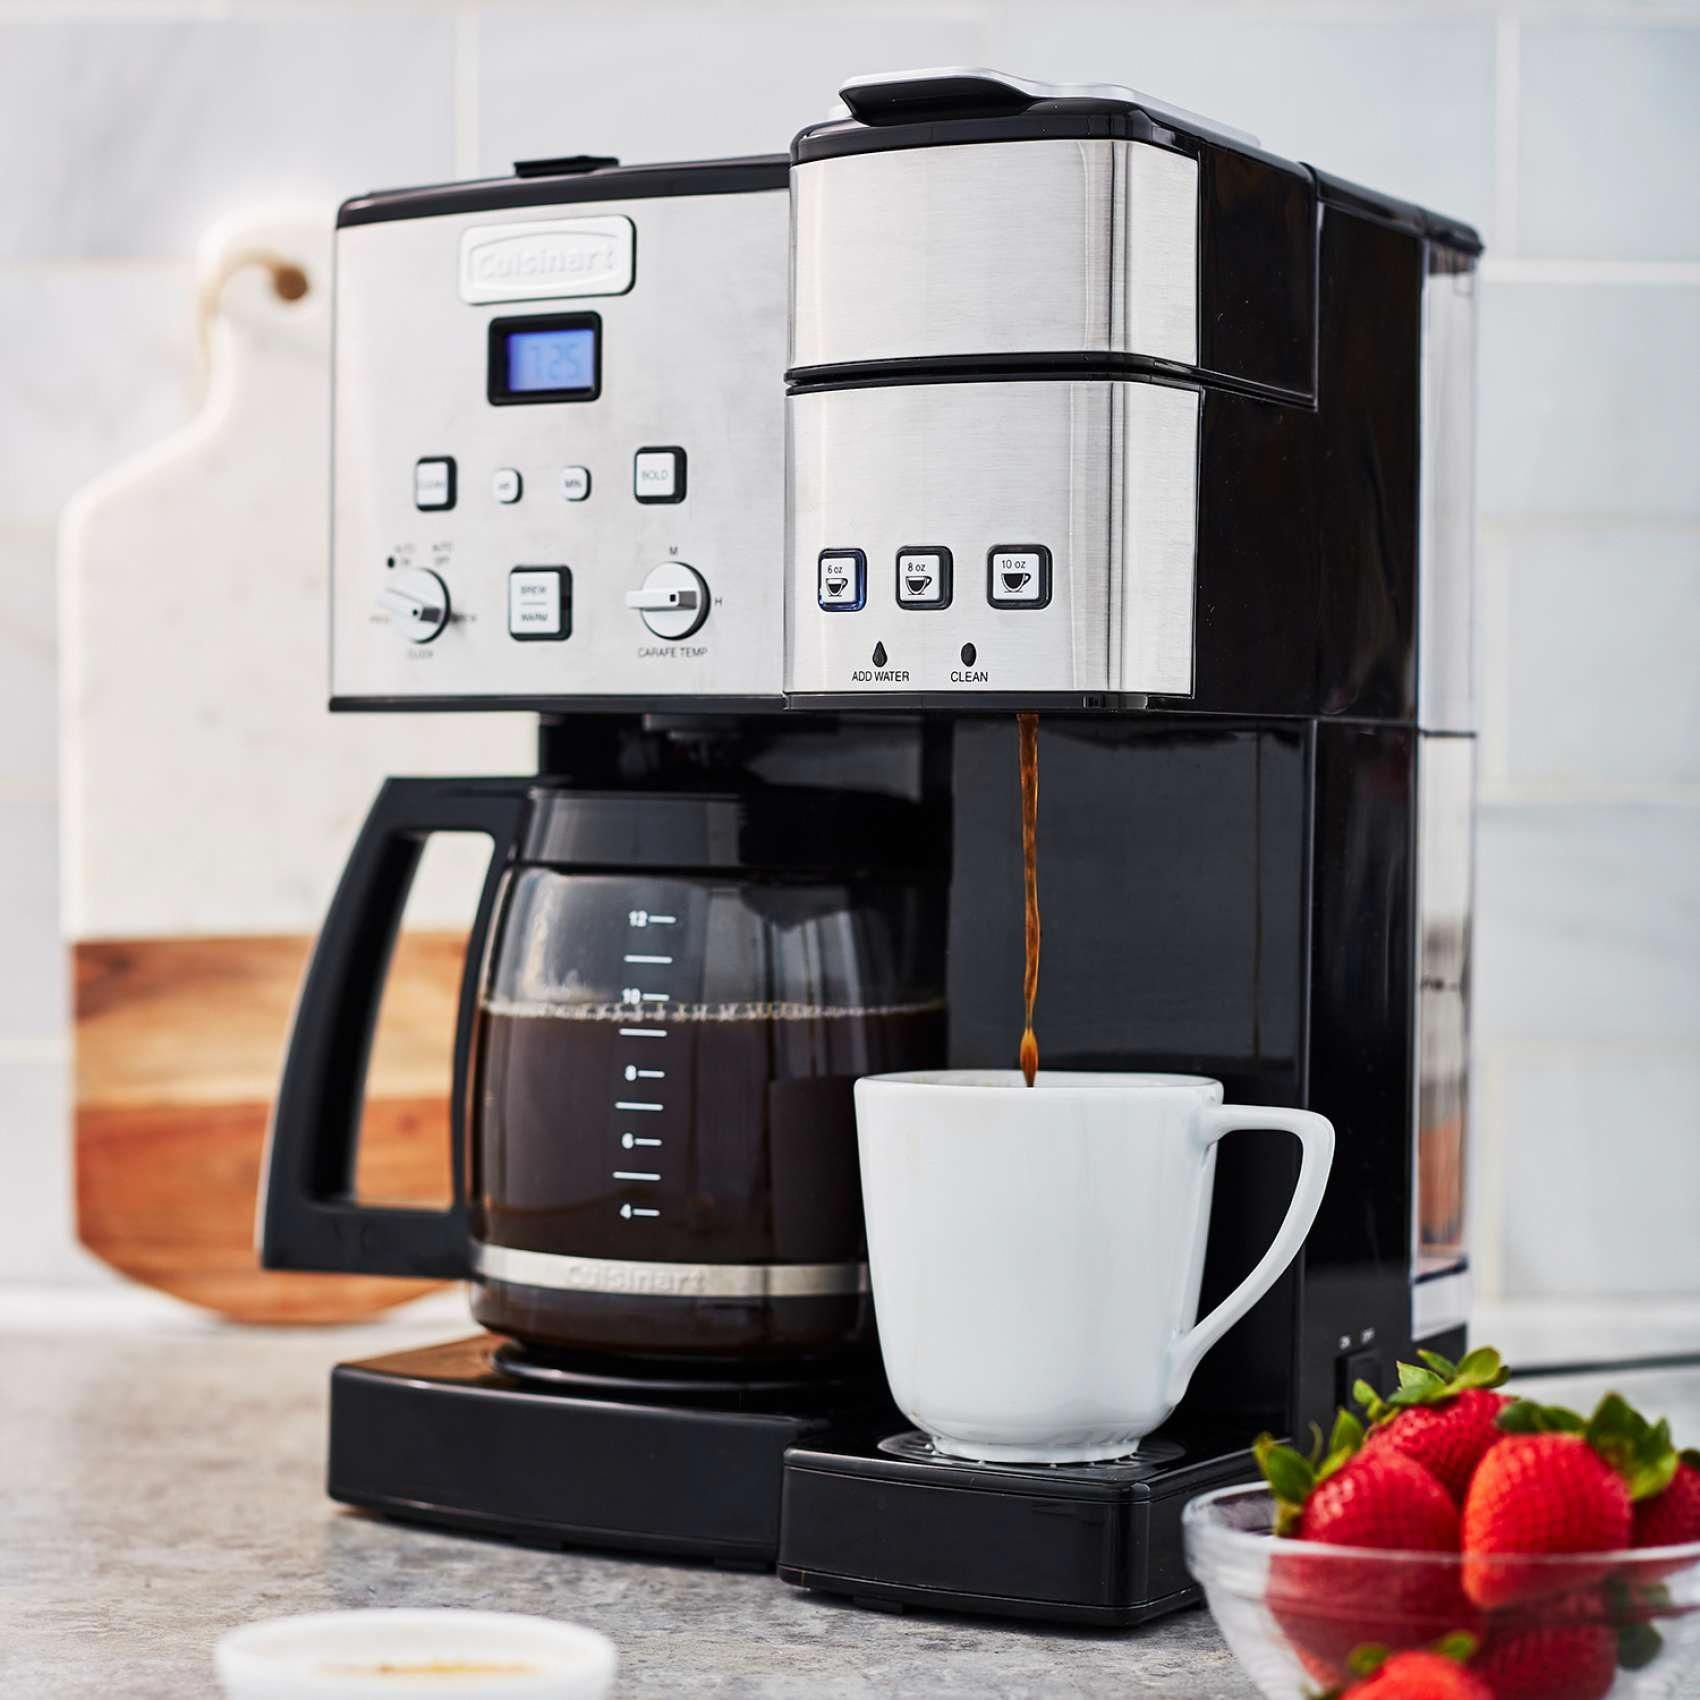 Cuisinart Coffee Center 12 Cup Coffee Maker And Single Serve Brewer Sur La Table Cuisinart Coffee Maker Coffee Drip Coffee Maker